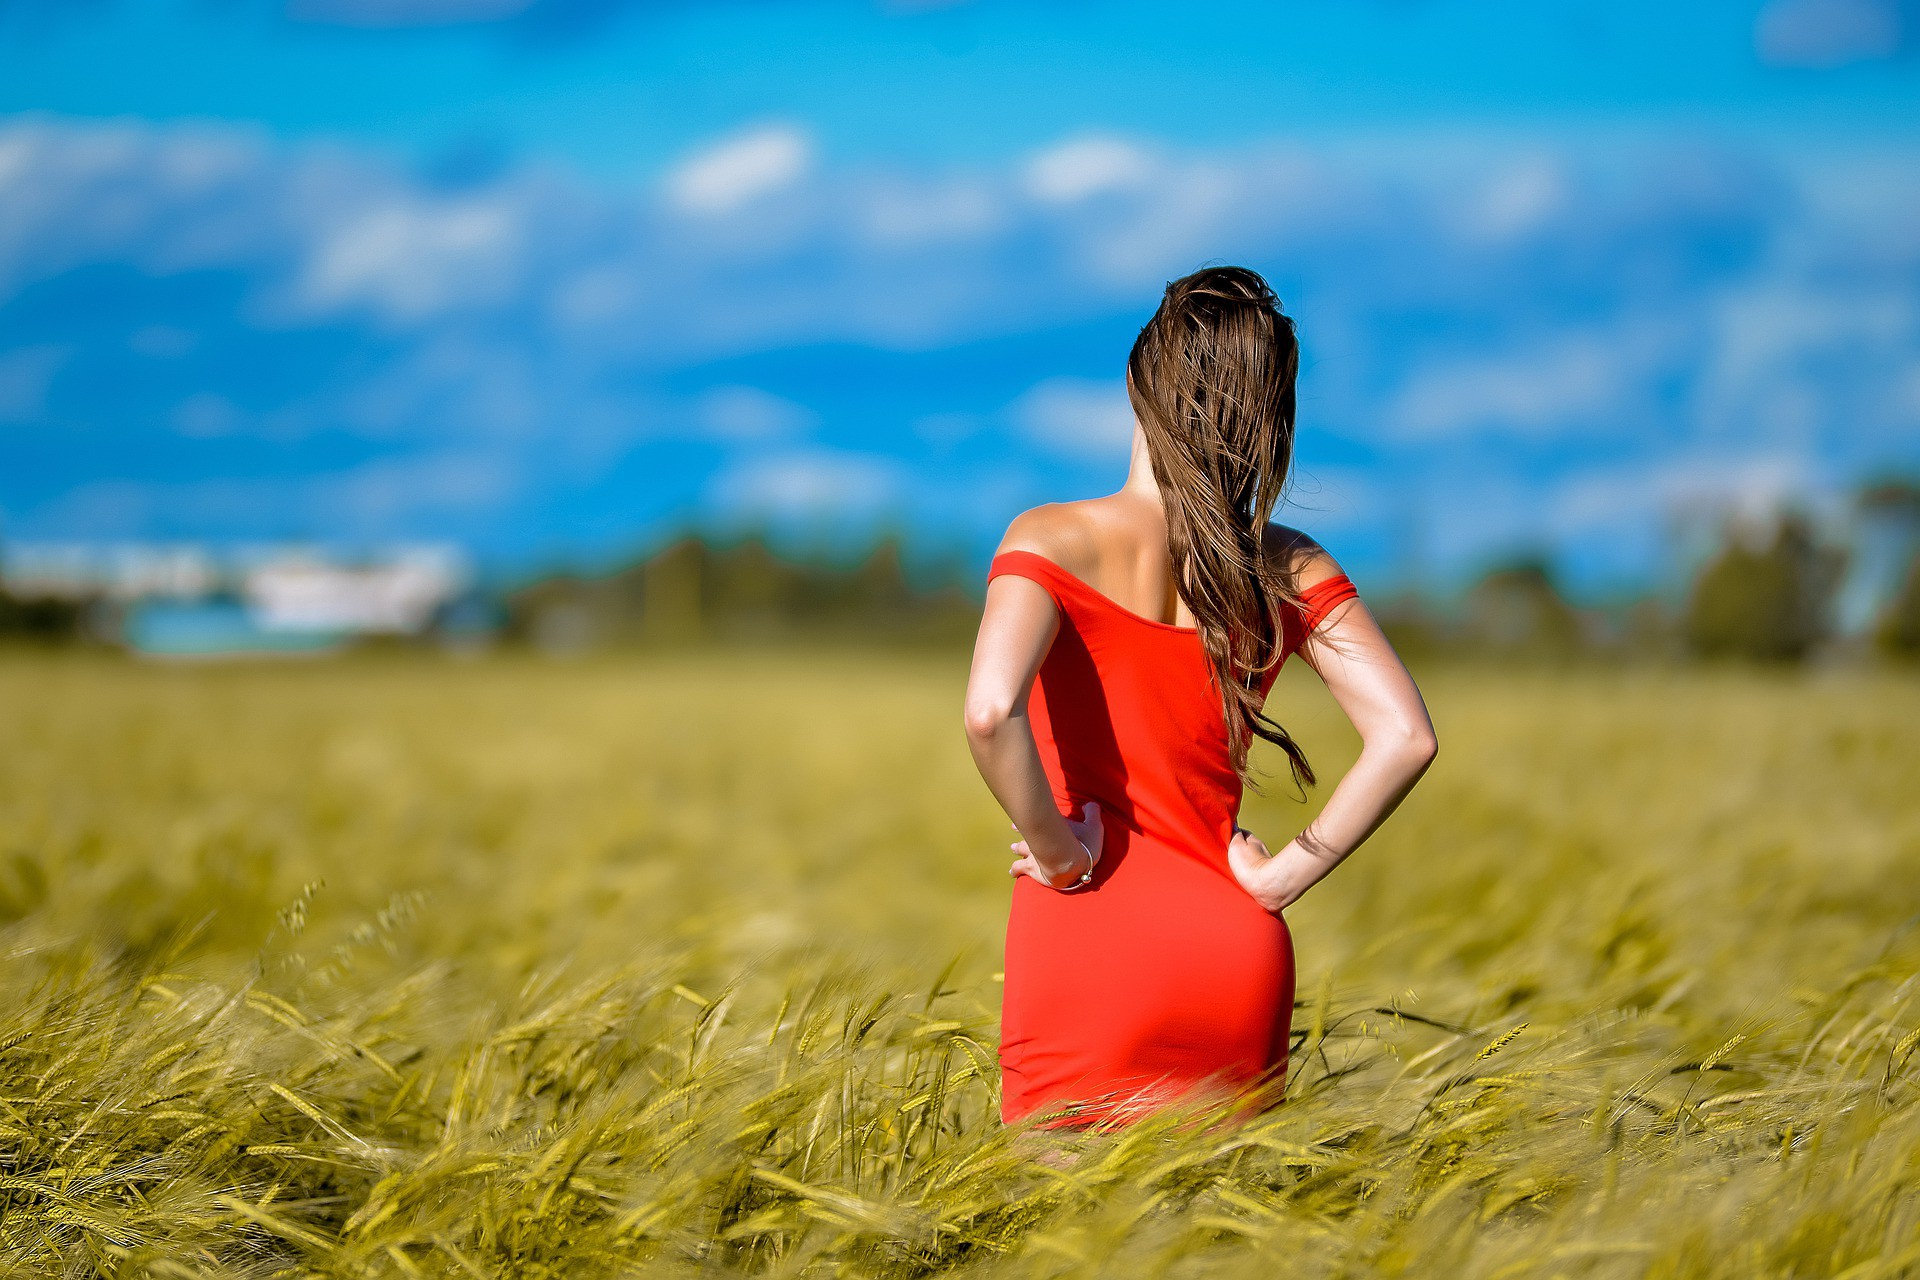 Woman in a red dress standing in a field